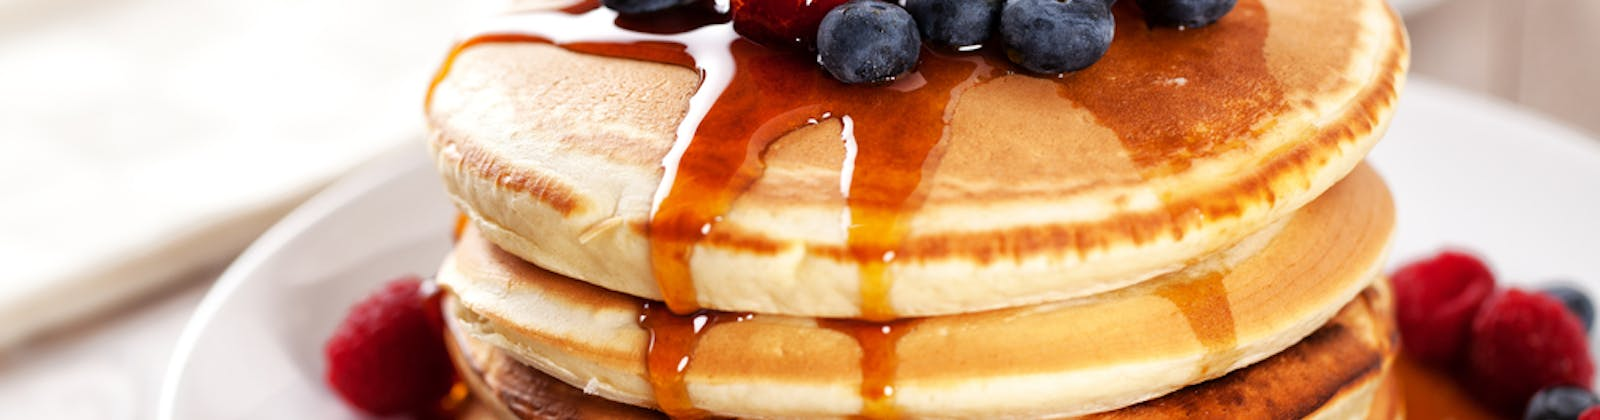 Pancake stack with fruit and syrup